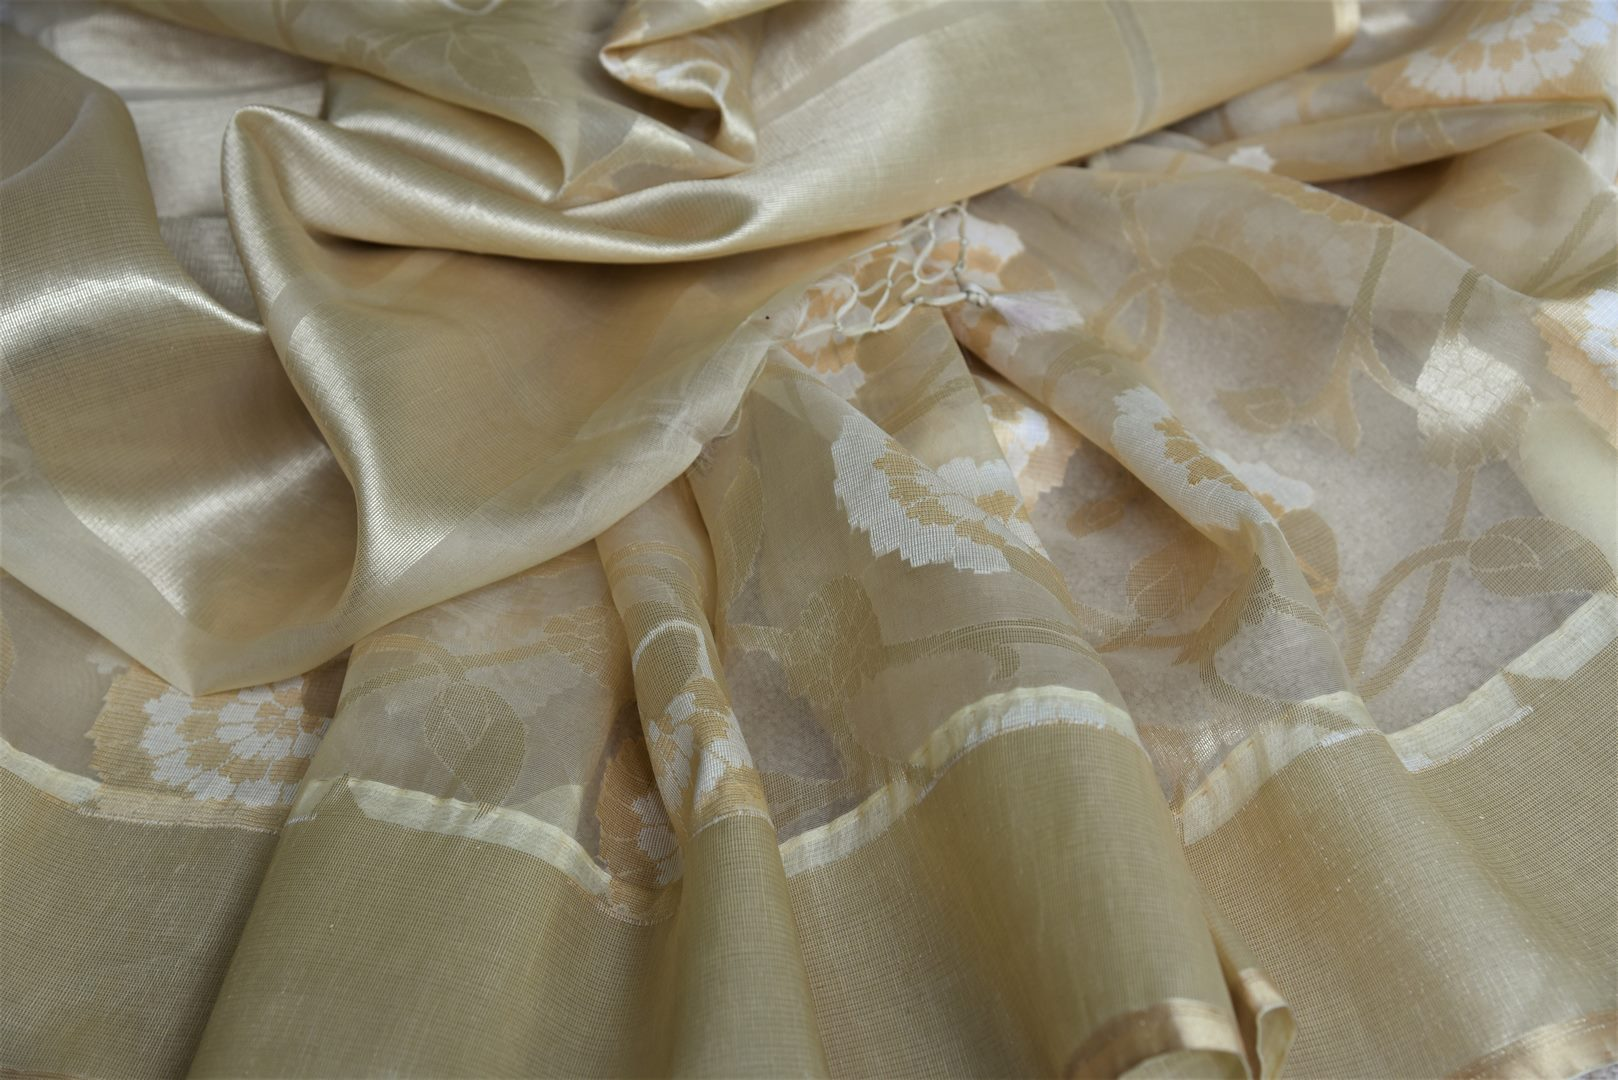 Shop online cream organza Banarasi sari in USA with floral design. Give your look an elegant touch with beautiful Indian designer saris available at Pure Elegance Indian fashion store in USA or shop online.-details